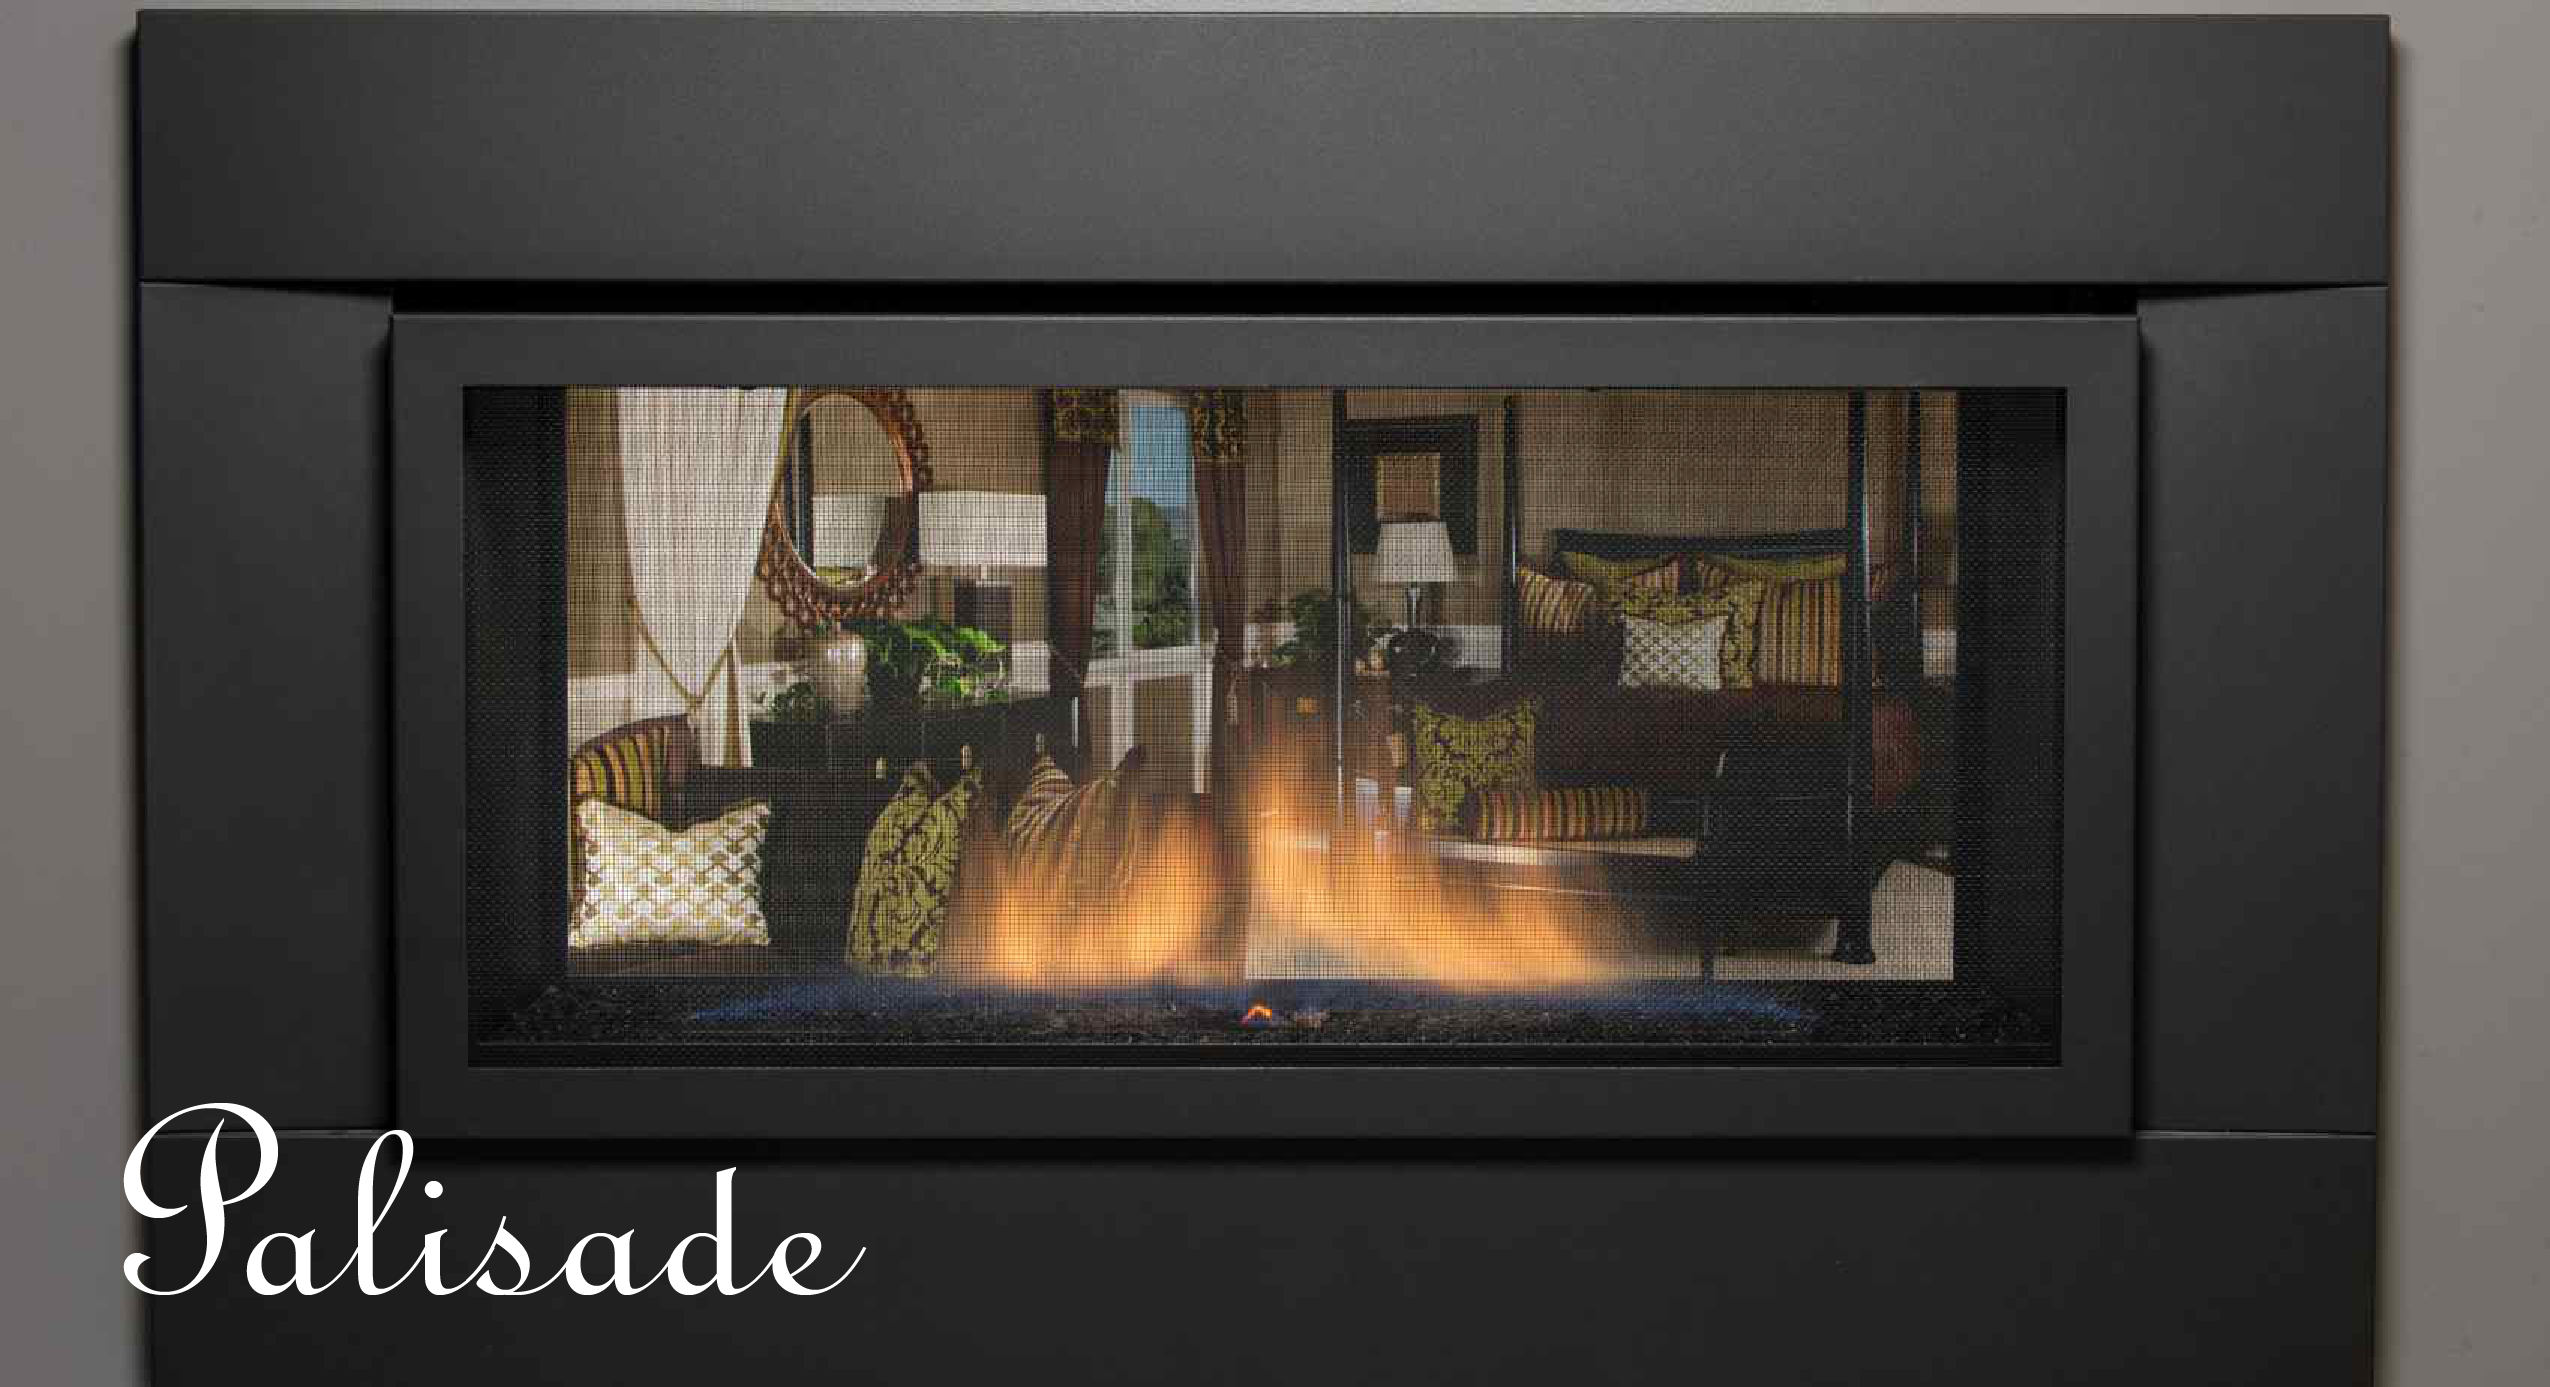 Sierra Flame Gas Fireplace – The Palisade 36ST See Thru